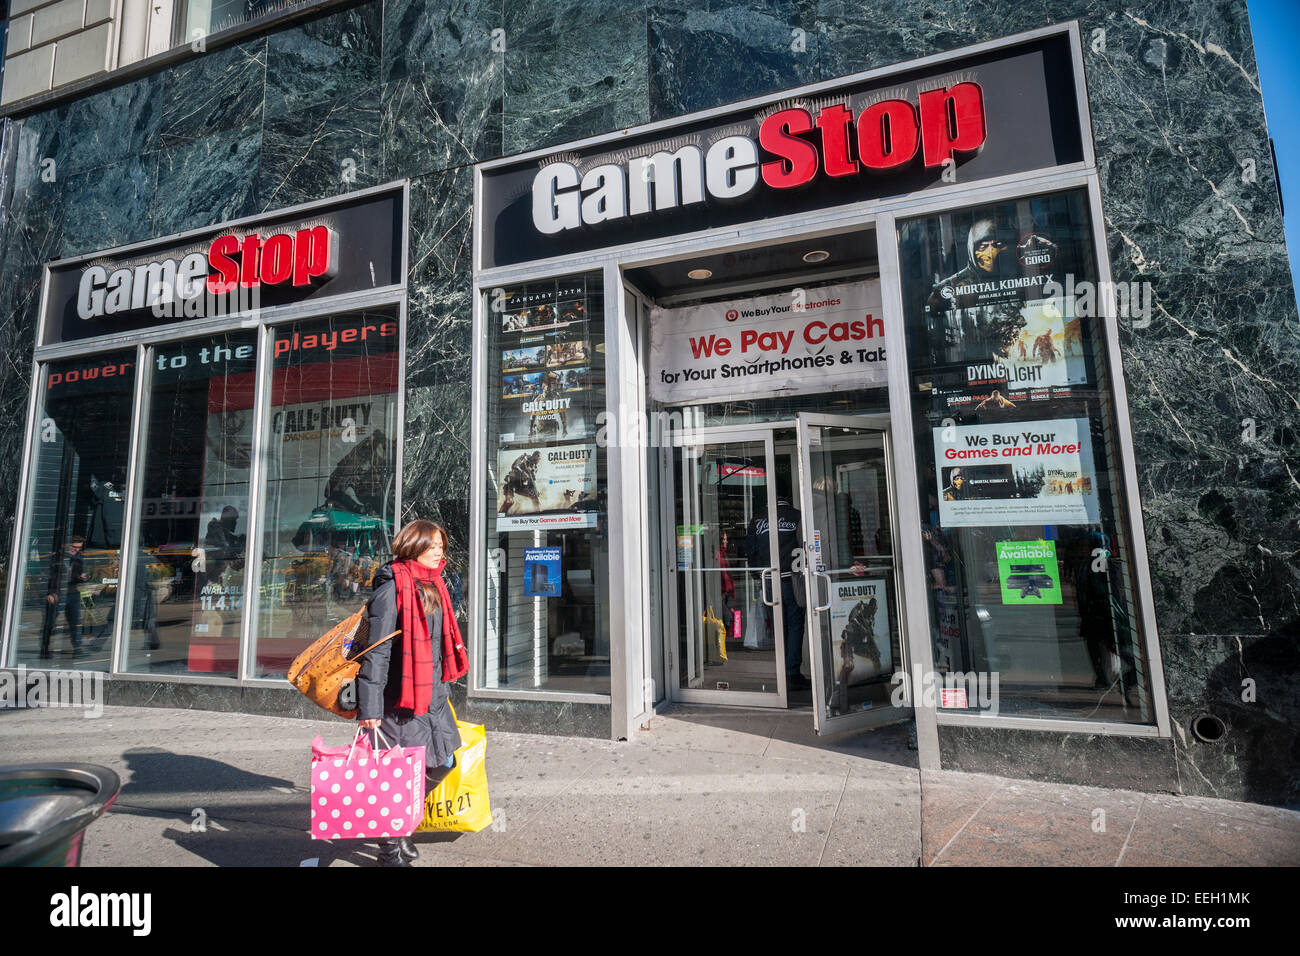 A gamestop video game store in the herald square shopping district in new york on thursday